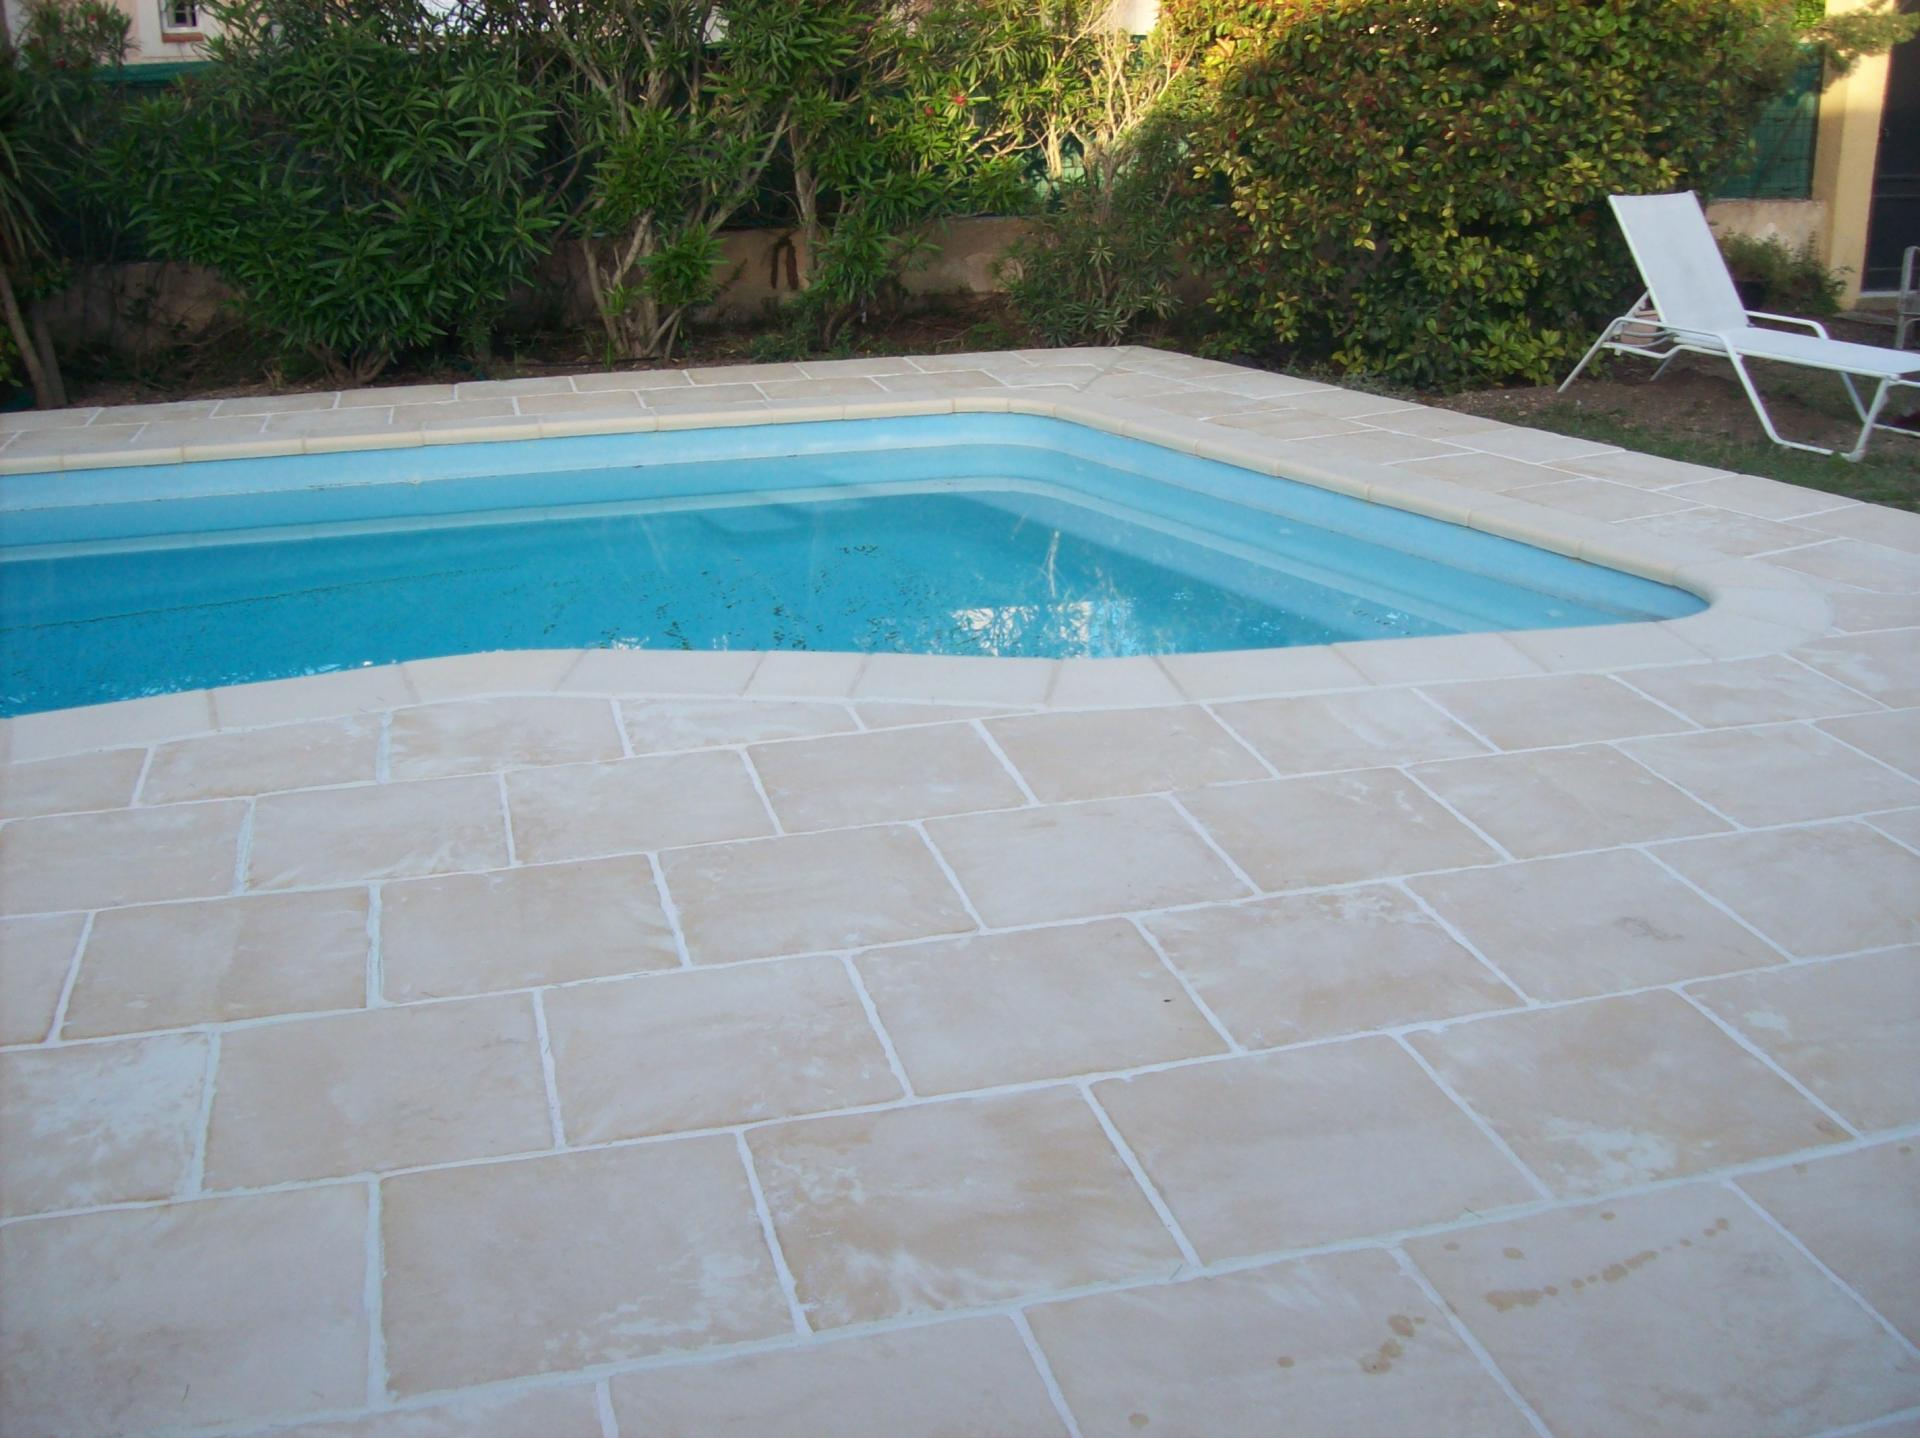 Ext rieur dallage piscine marseille for Carrelage contour piscine